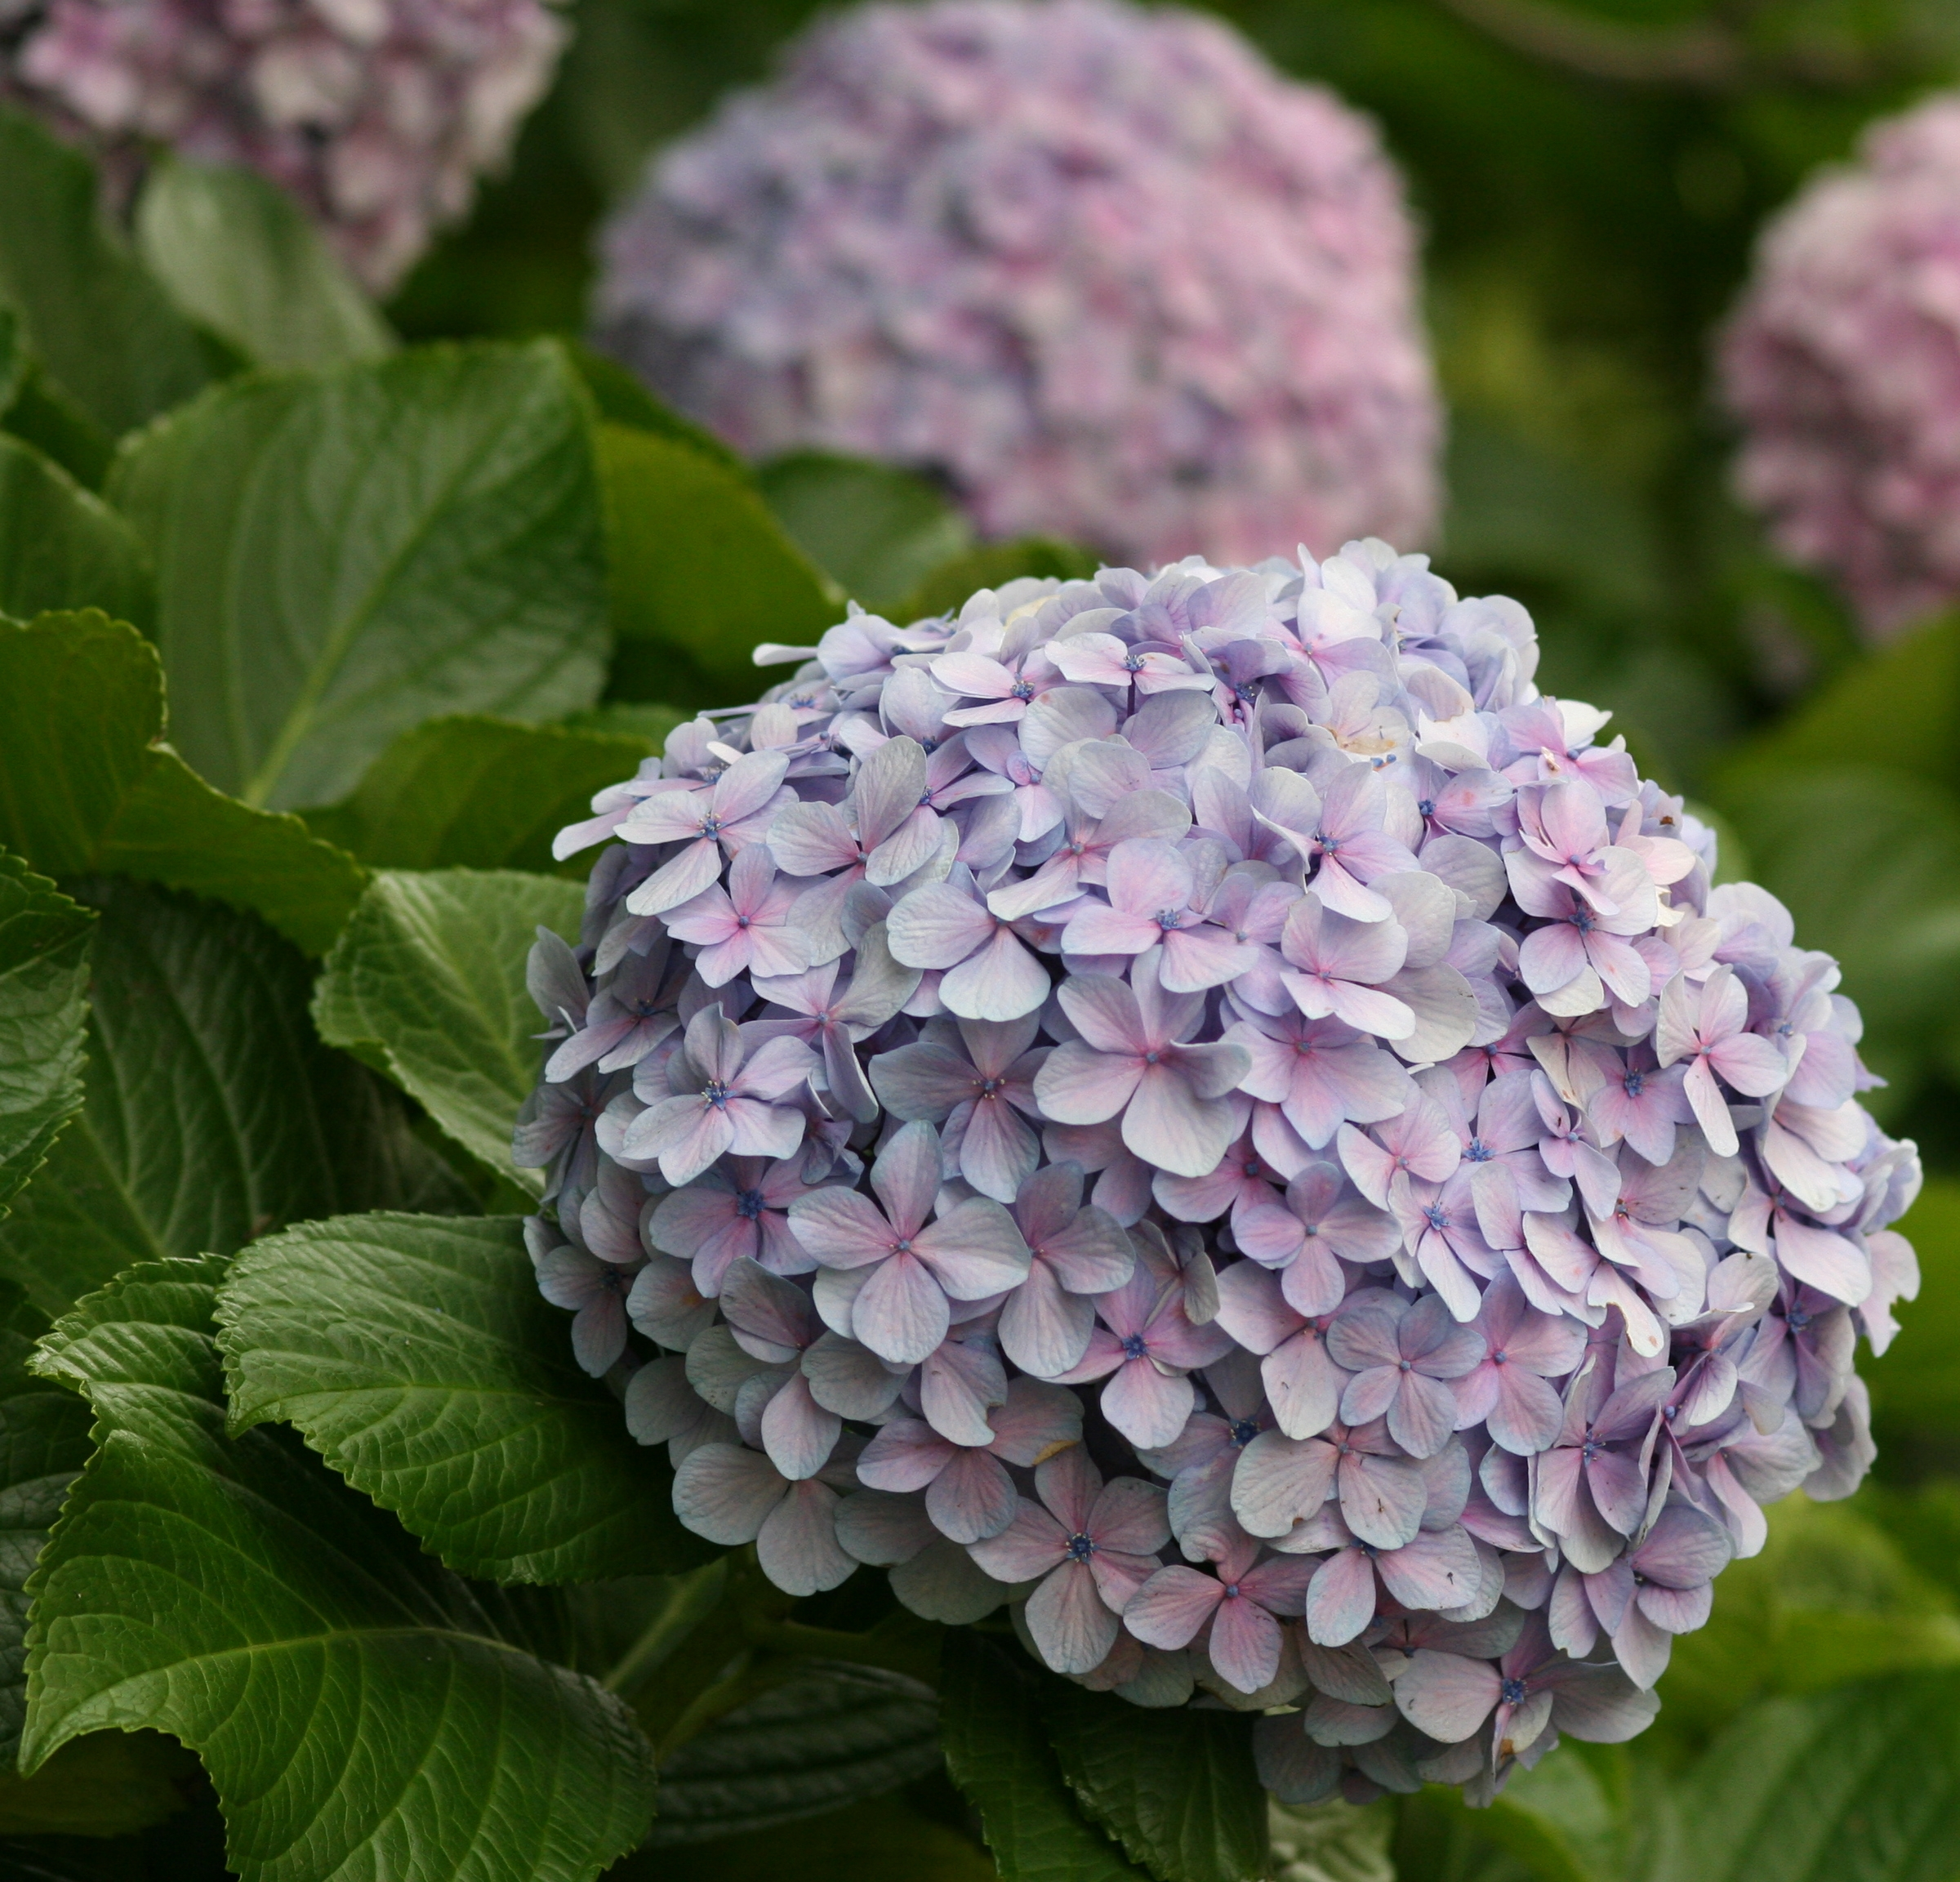 hydrangea flowers  flower, Natural flower